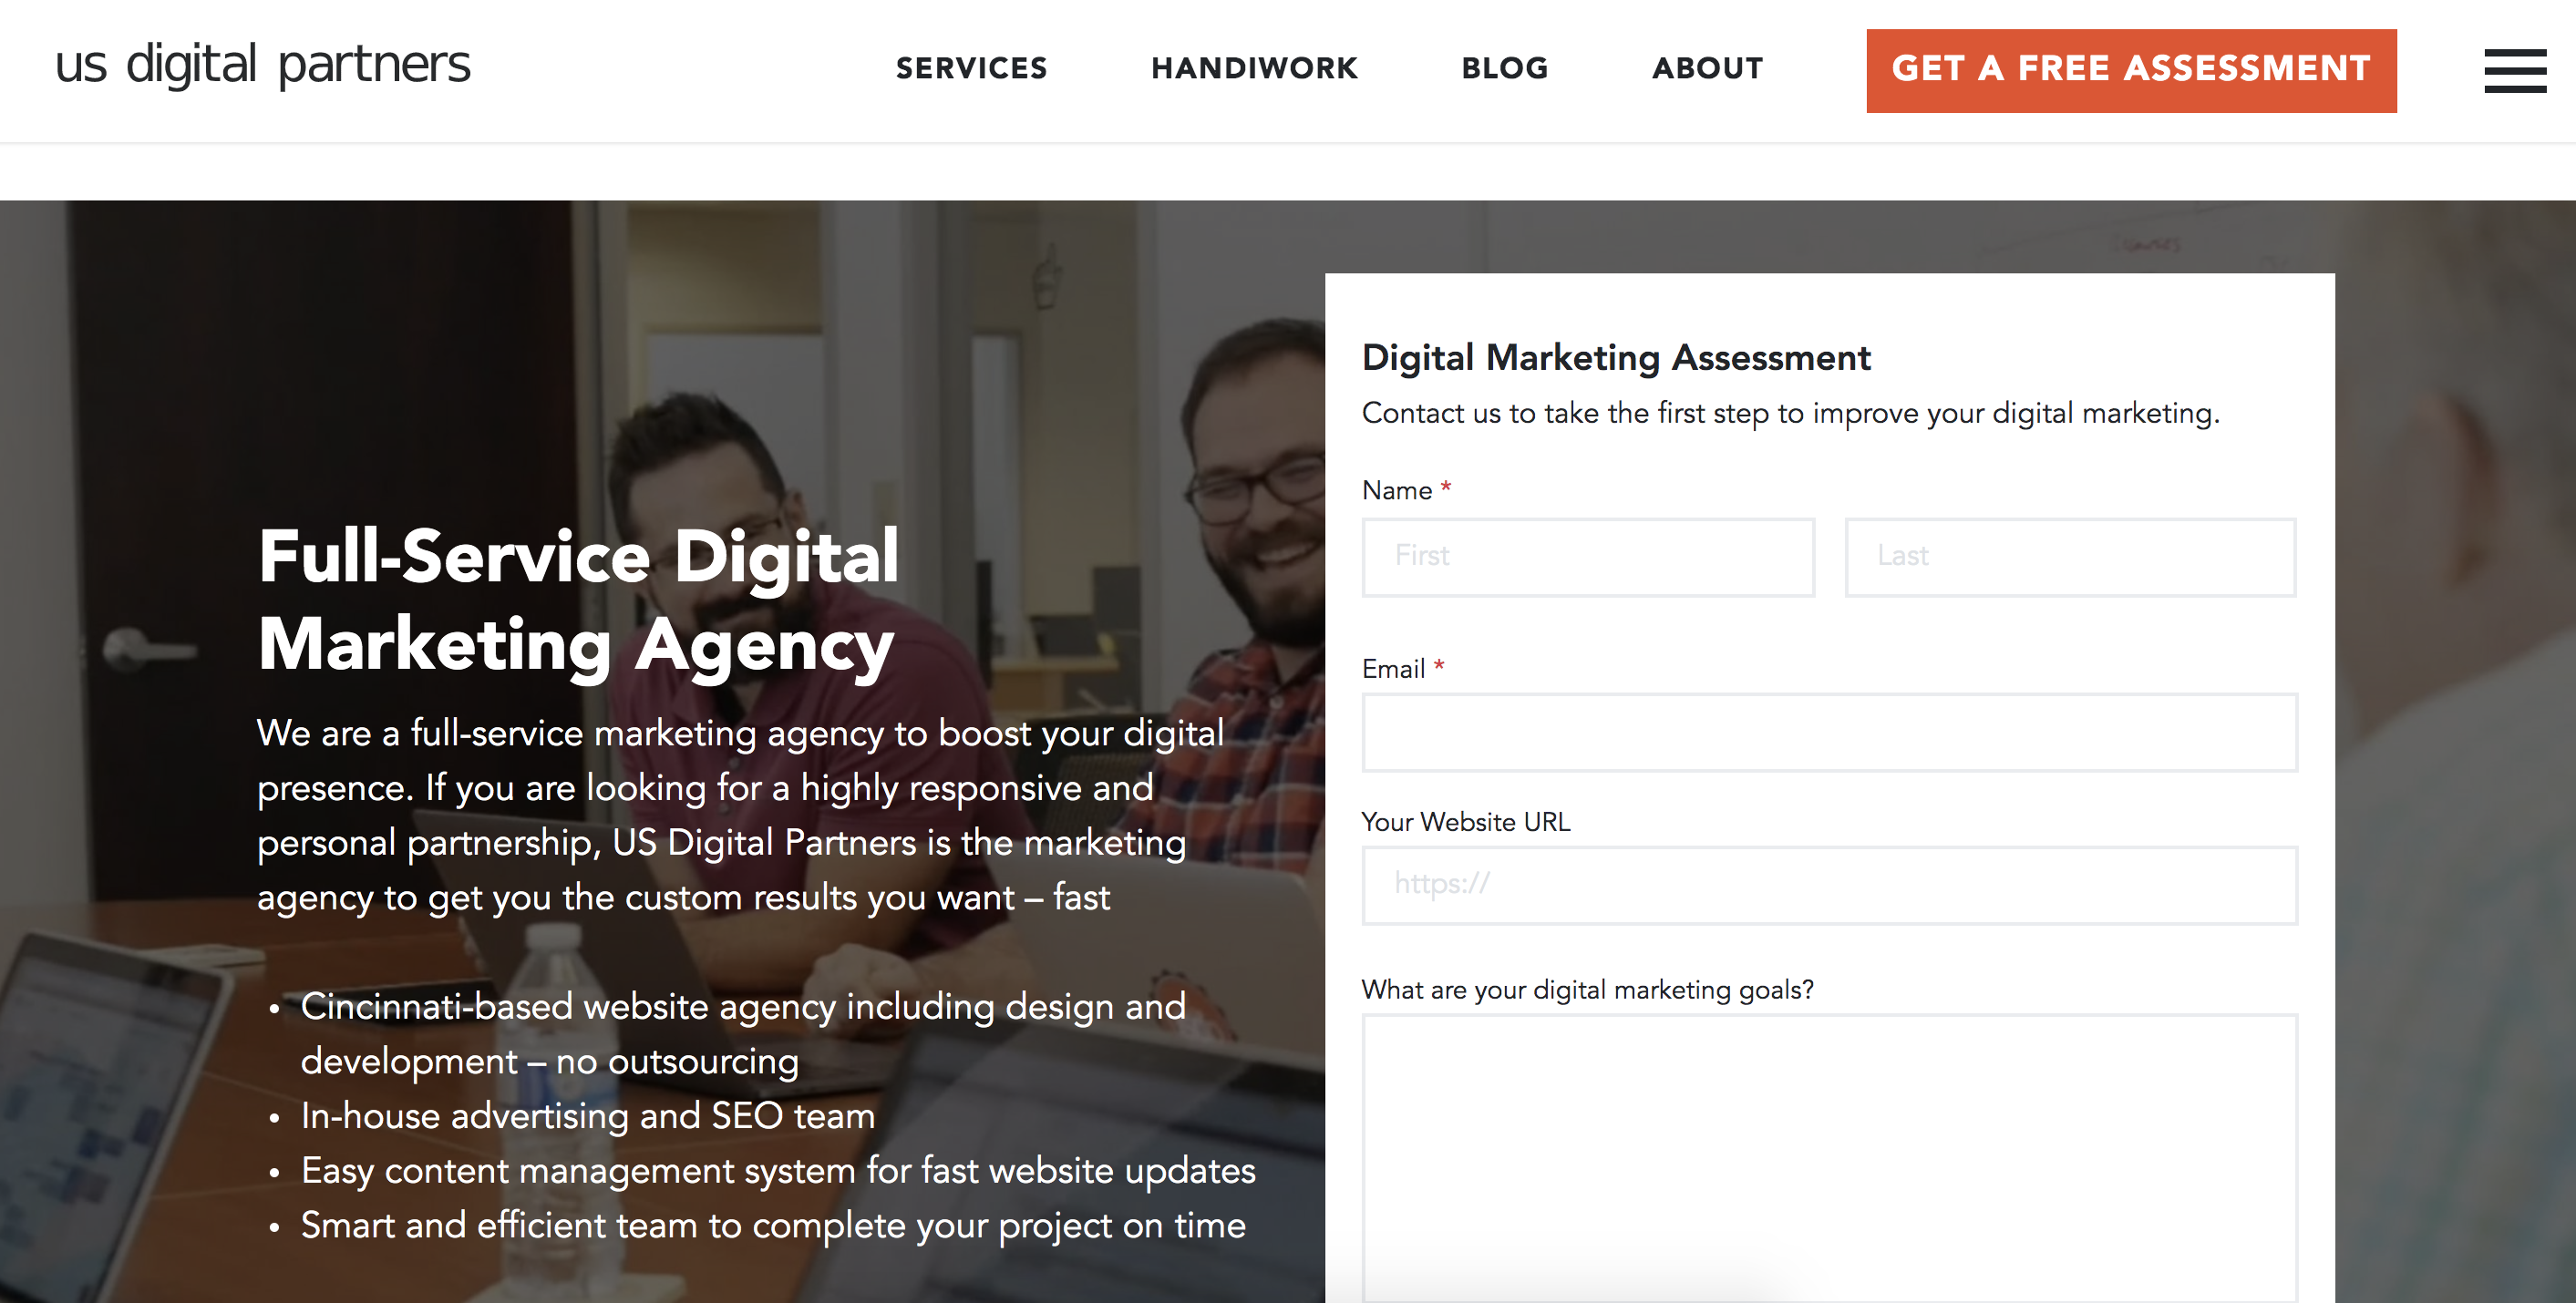 us digital partners ad landing page avoids SEM mistakes